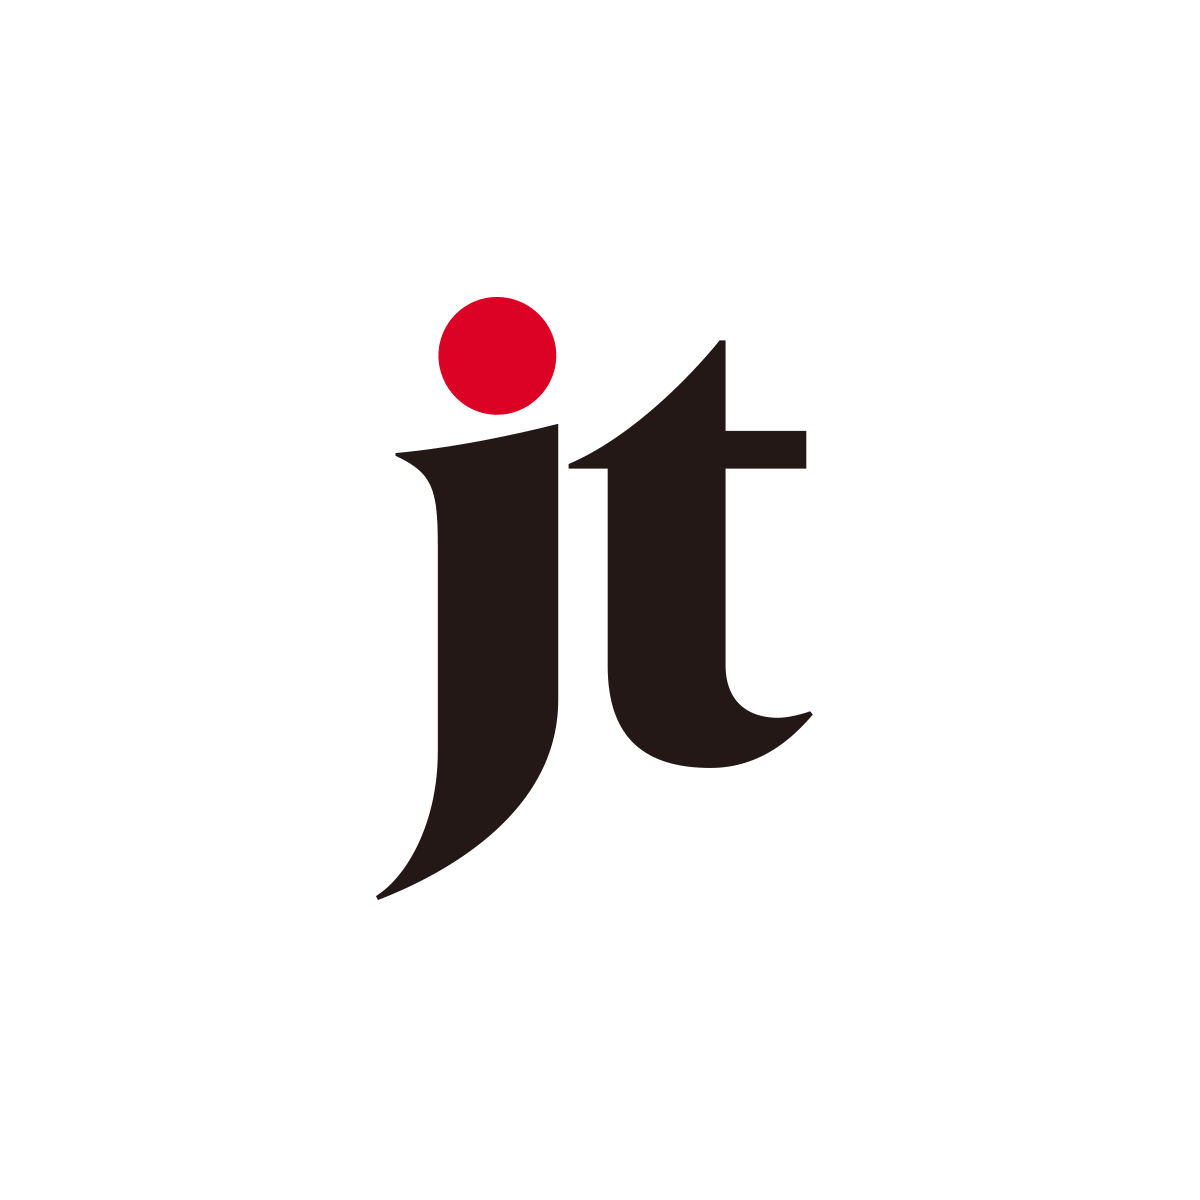 www.japantimes.co.jp